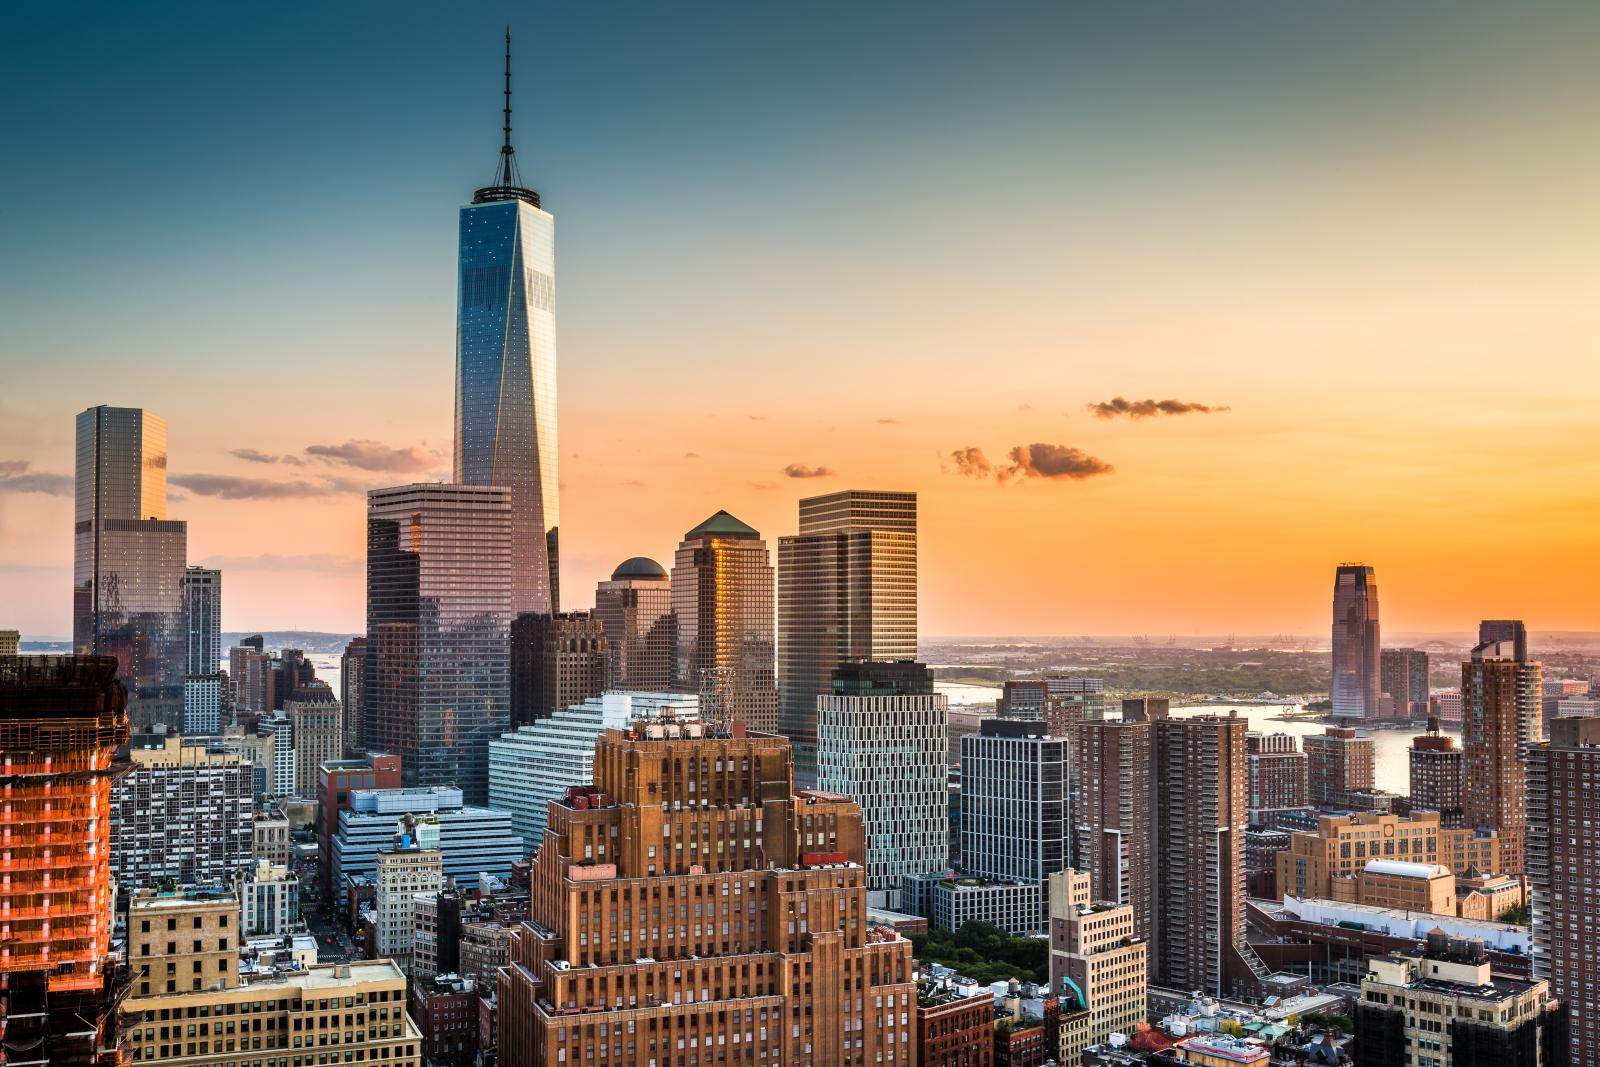 El One World Trade Center es el edificio más alto de Manhattan